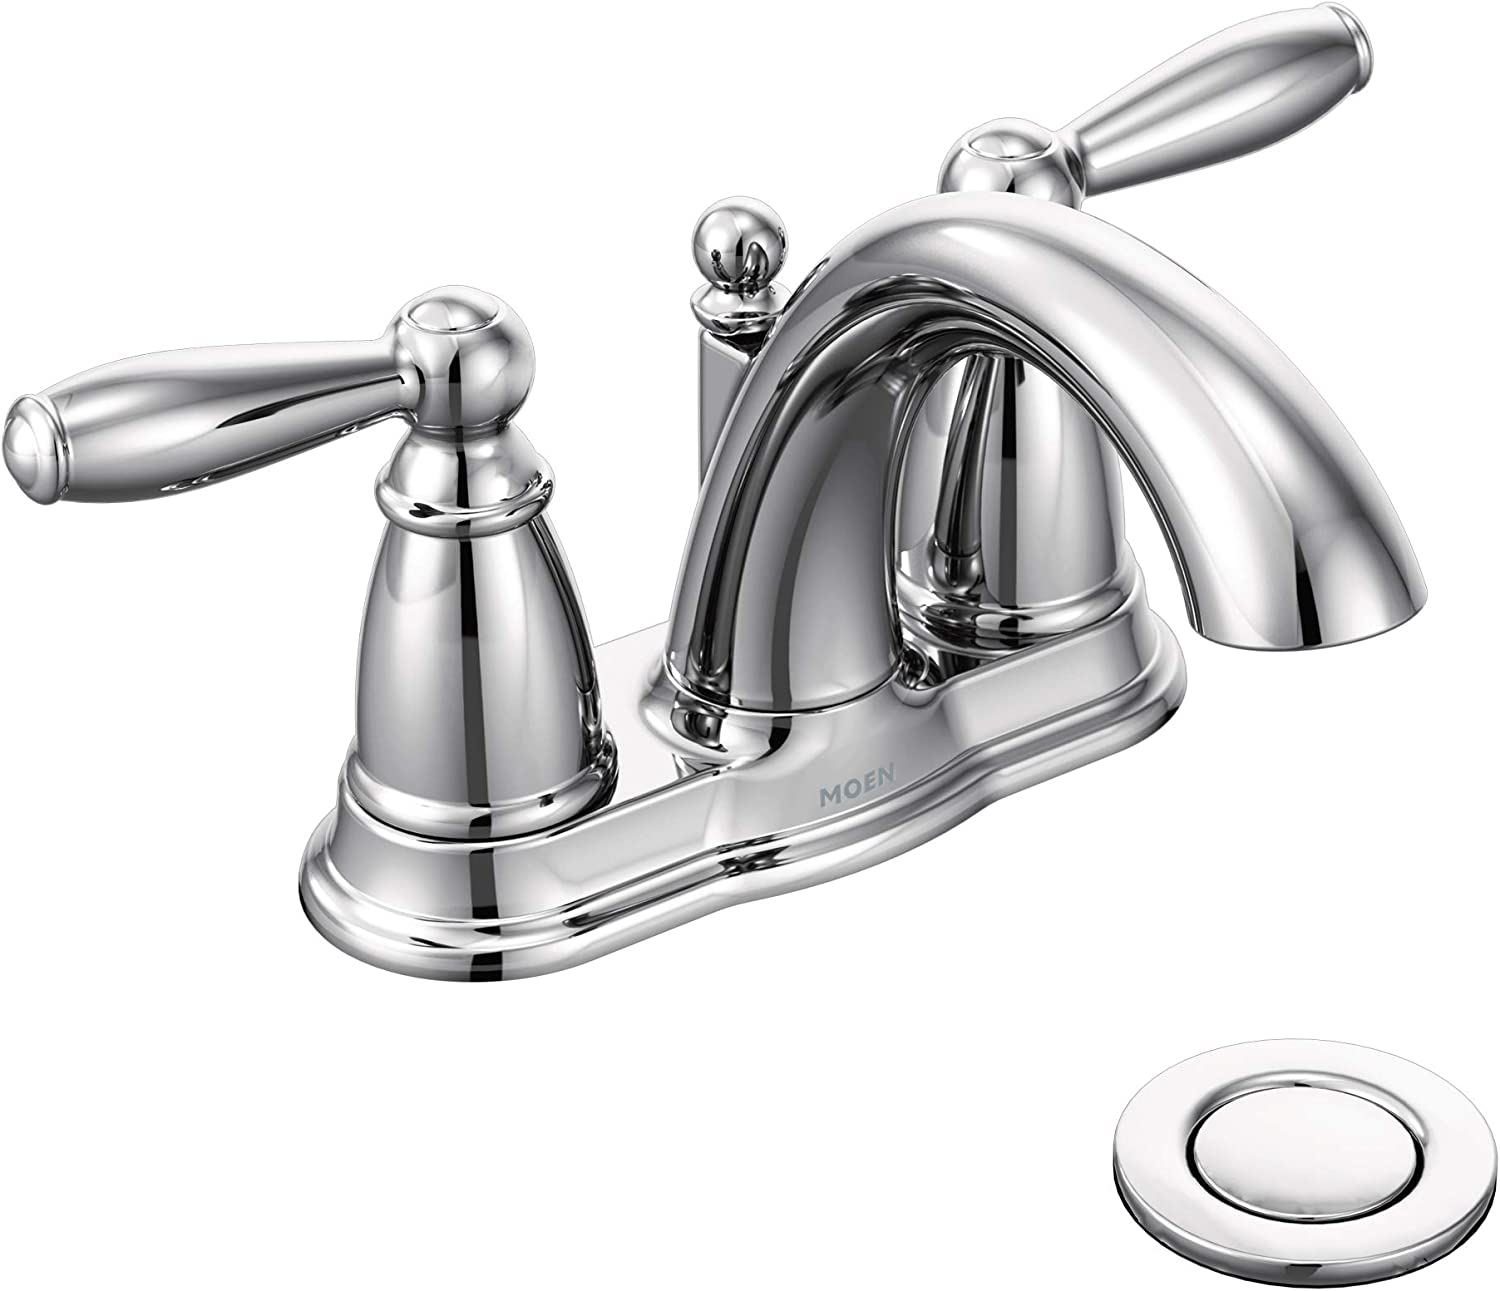 Moen 6610 Brantford Two Handle Low Arc Centerset Bathroom Faucet With Drain Assembly Chrome Touch On Bathroom Sink Faucets Amazon Com